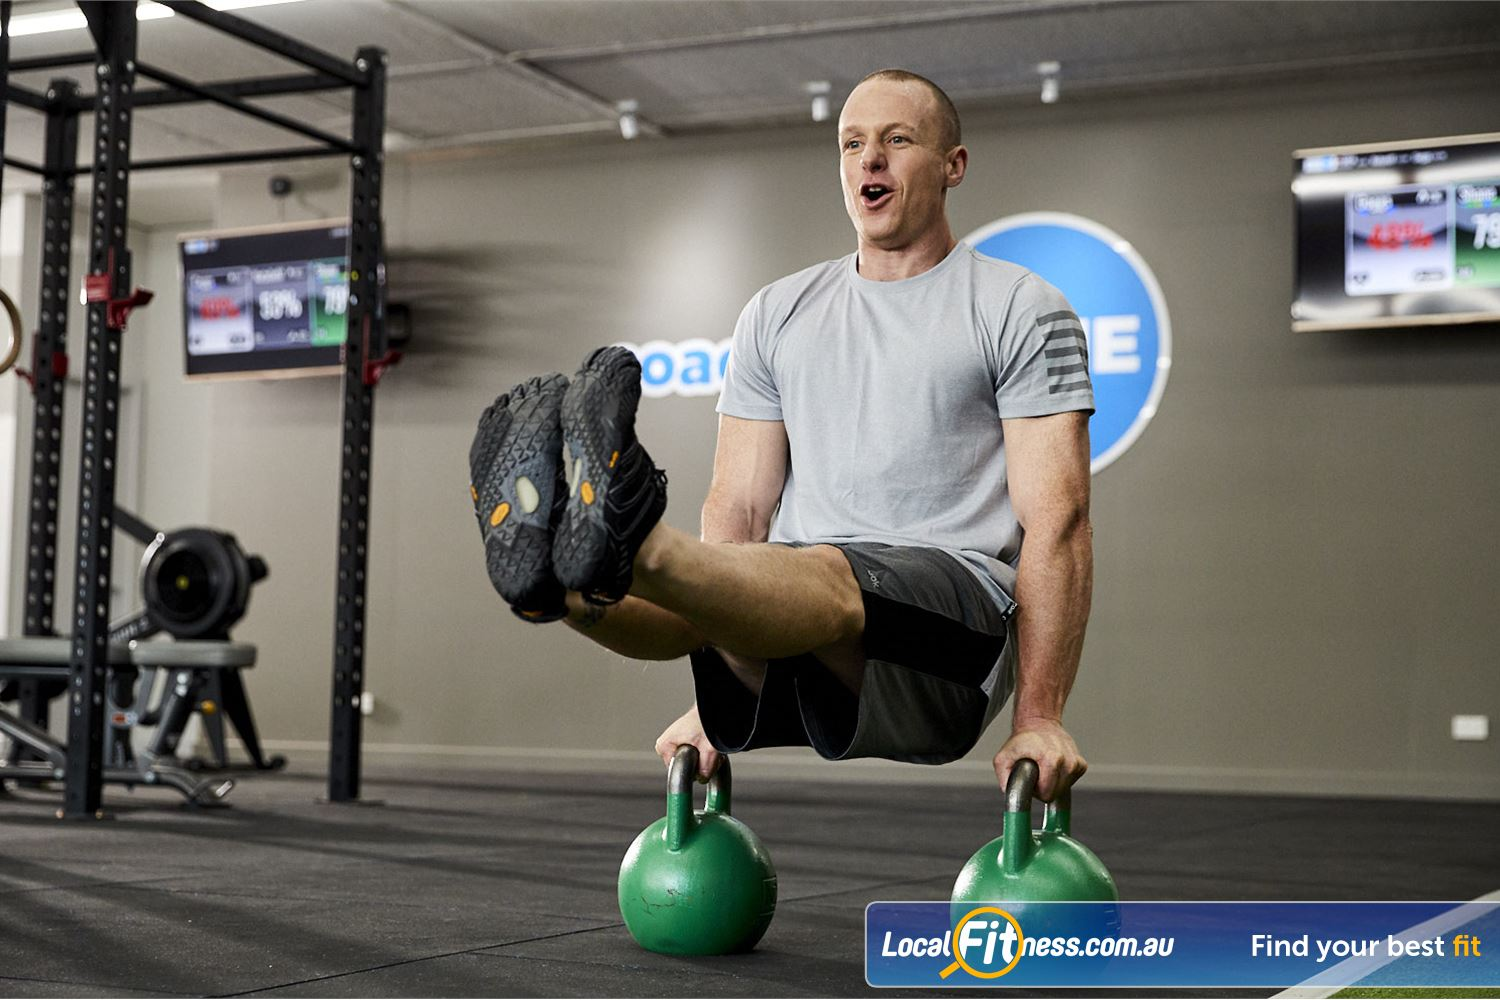 Coaching Zone Near Knoxfield Our Ferntree Gully HIIT gym classes focus on strength and conditioning.